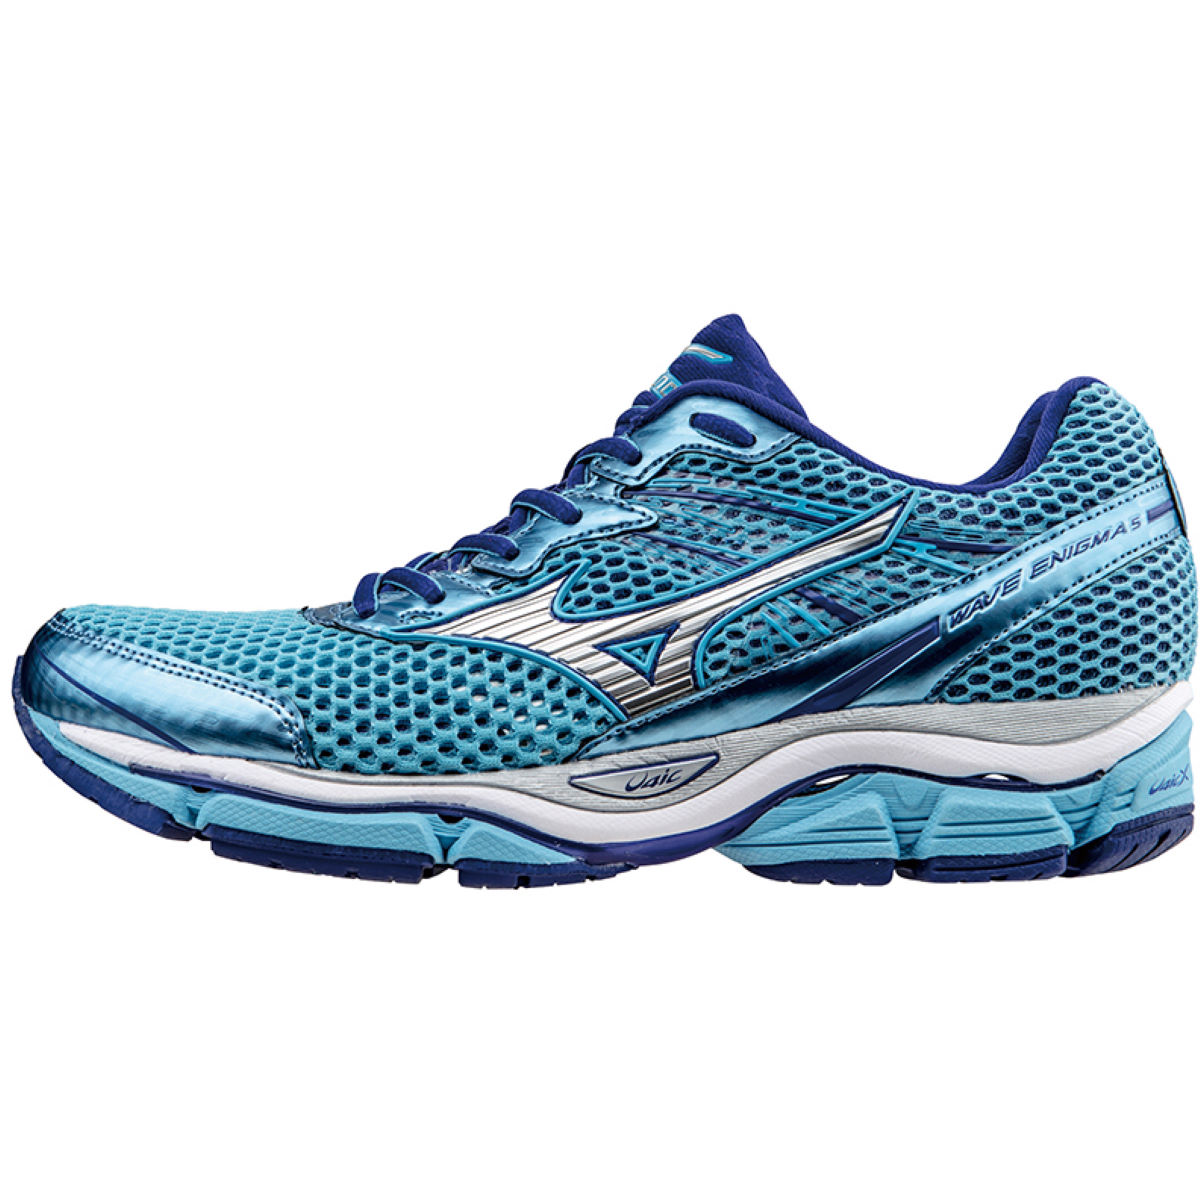 Chaussures Femme Mizuno Wave Enigma 5 (PE16) - 4 UK Blue/Silver/Blue Chaussures de running amorties